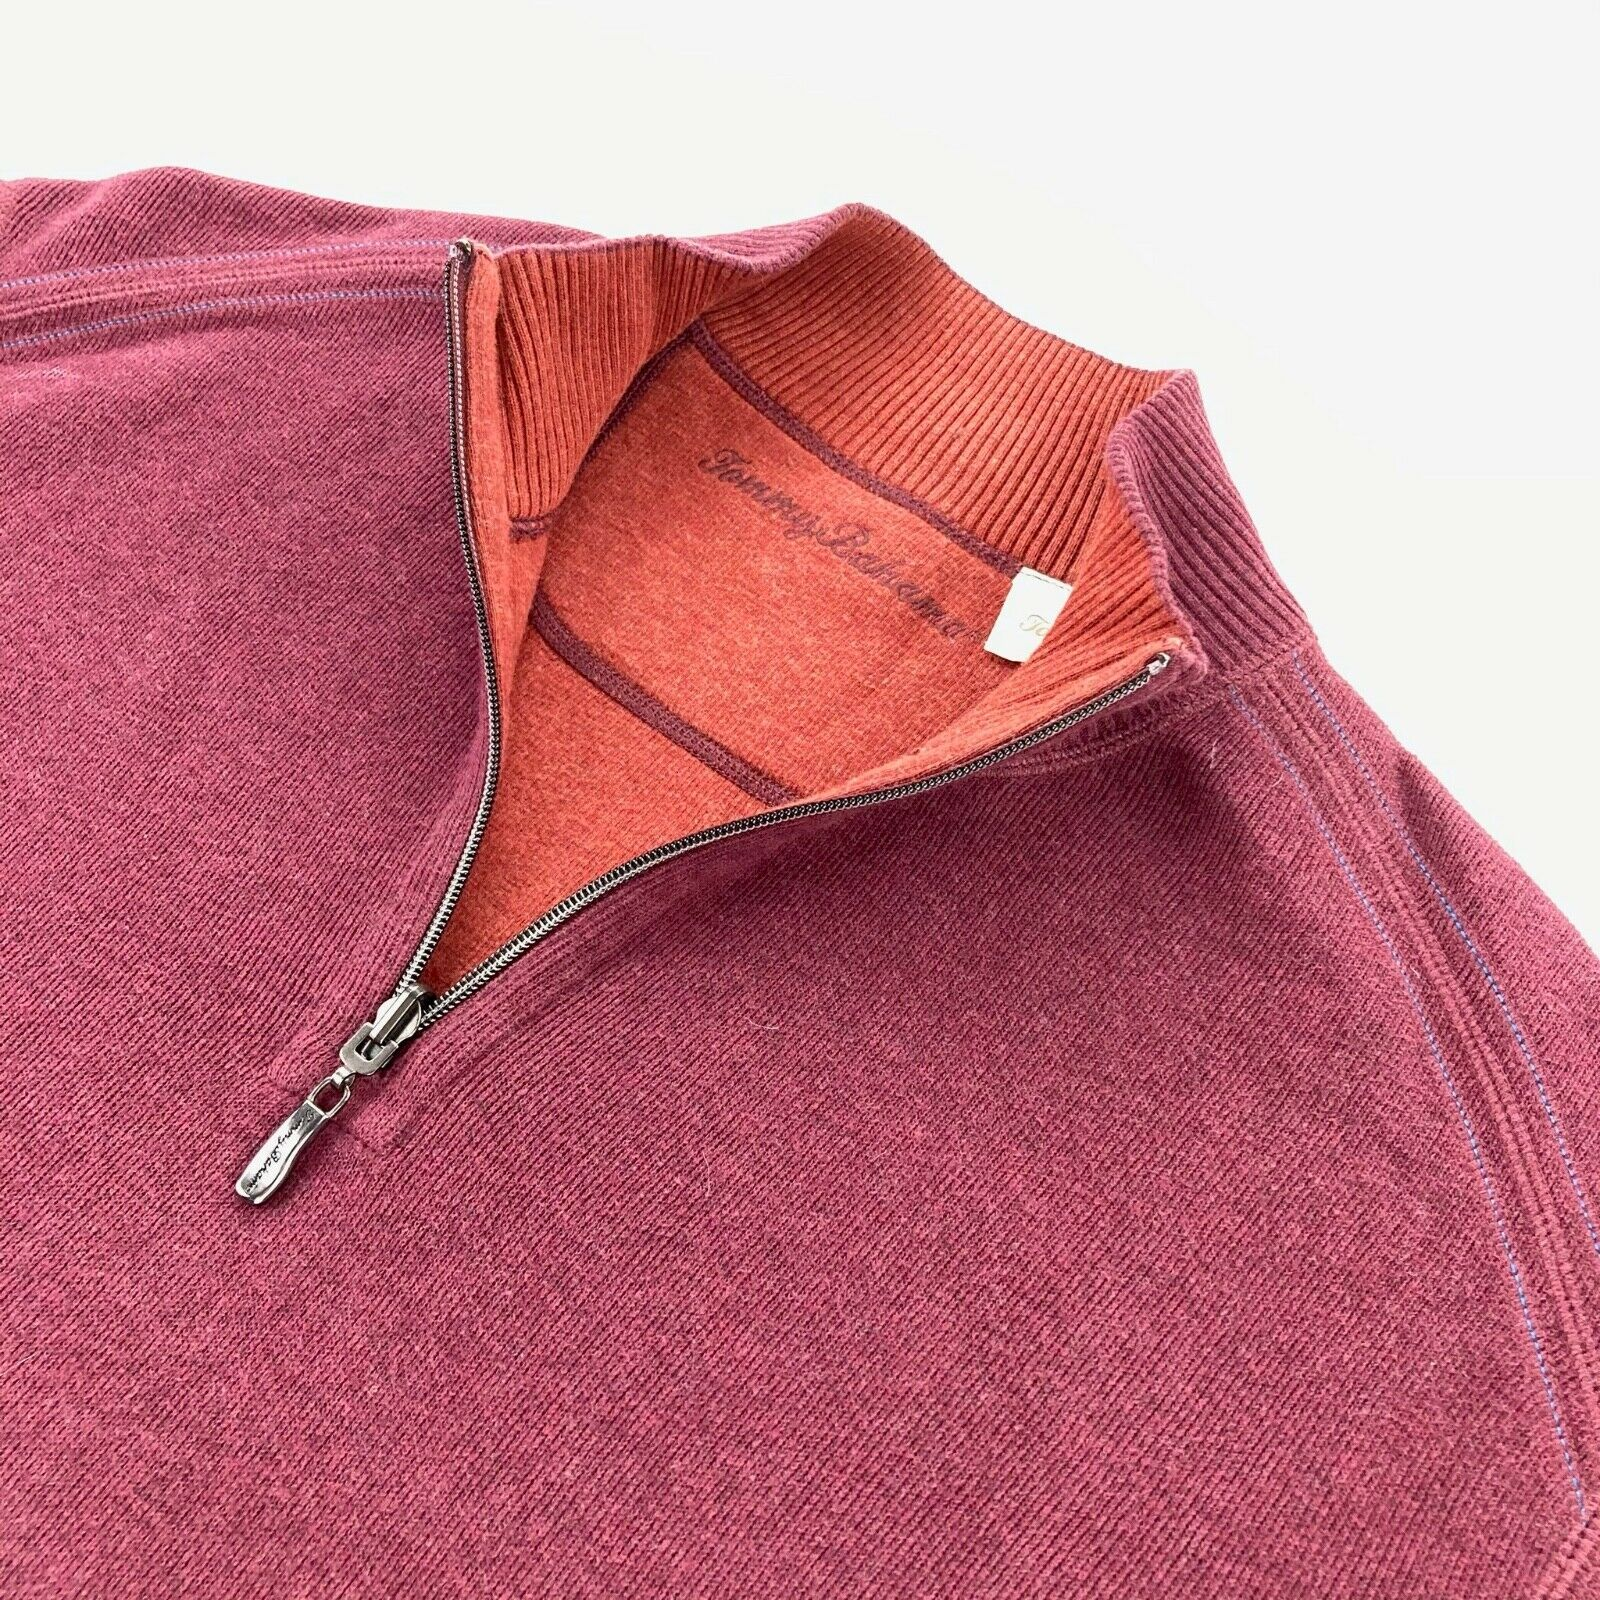 Product Image 1 - Tommy Bahama Mens 1/4 Zip